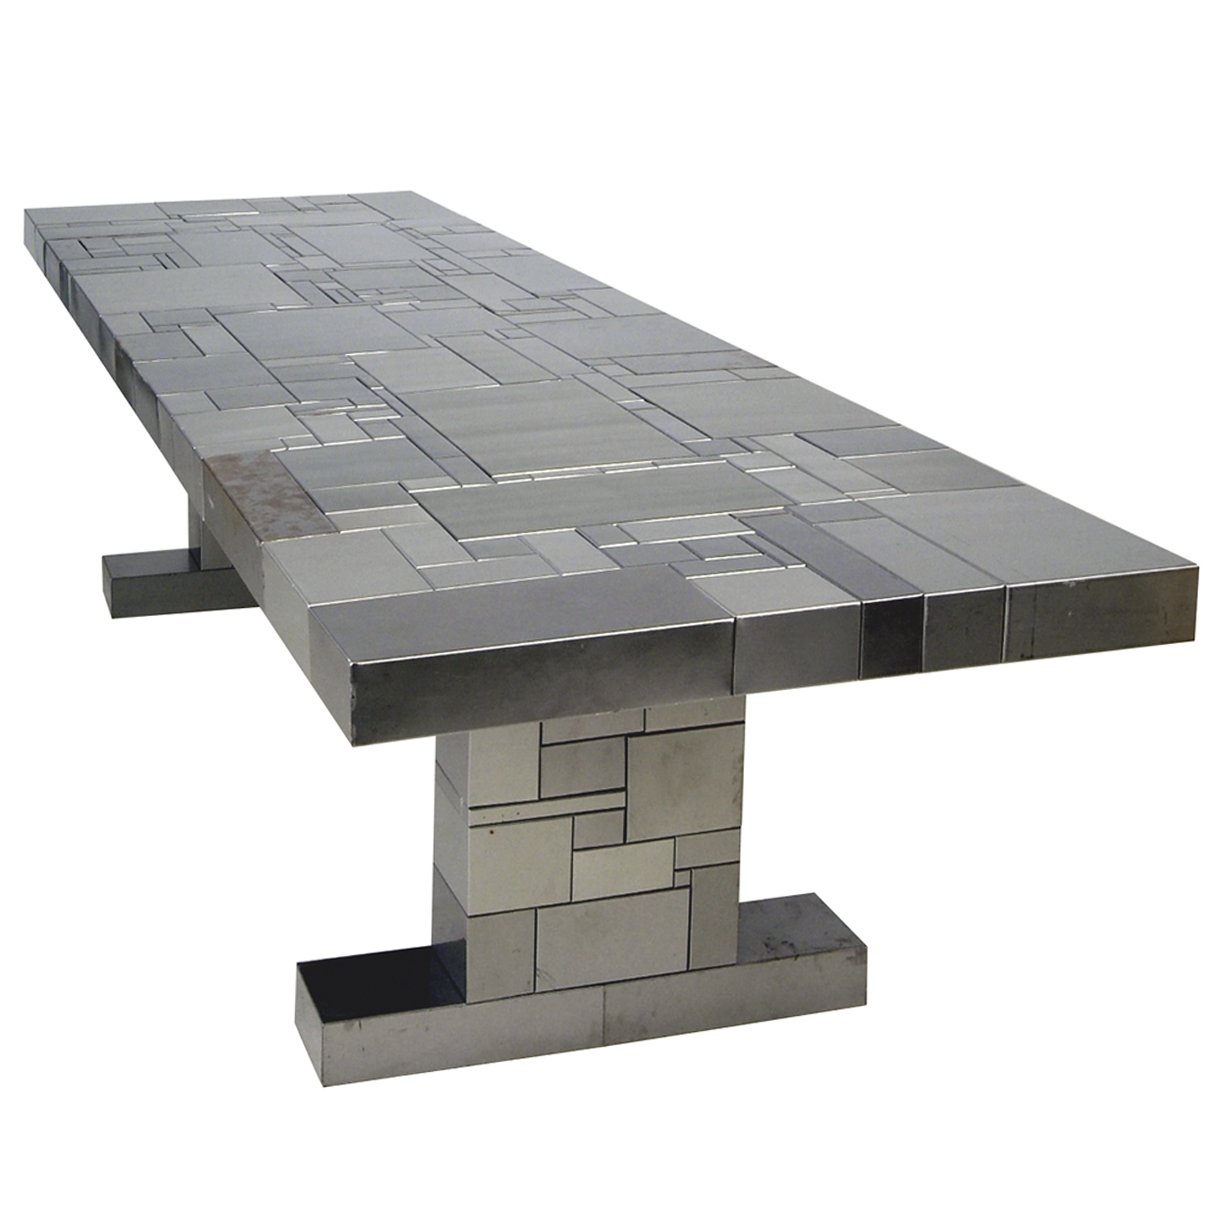 1300-1301 Waste table in inox-steel W